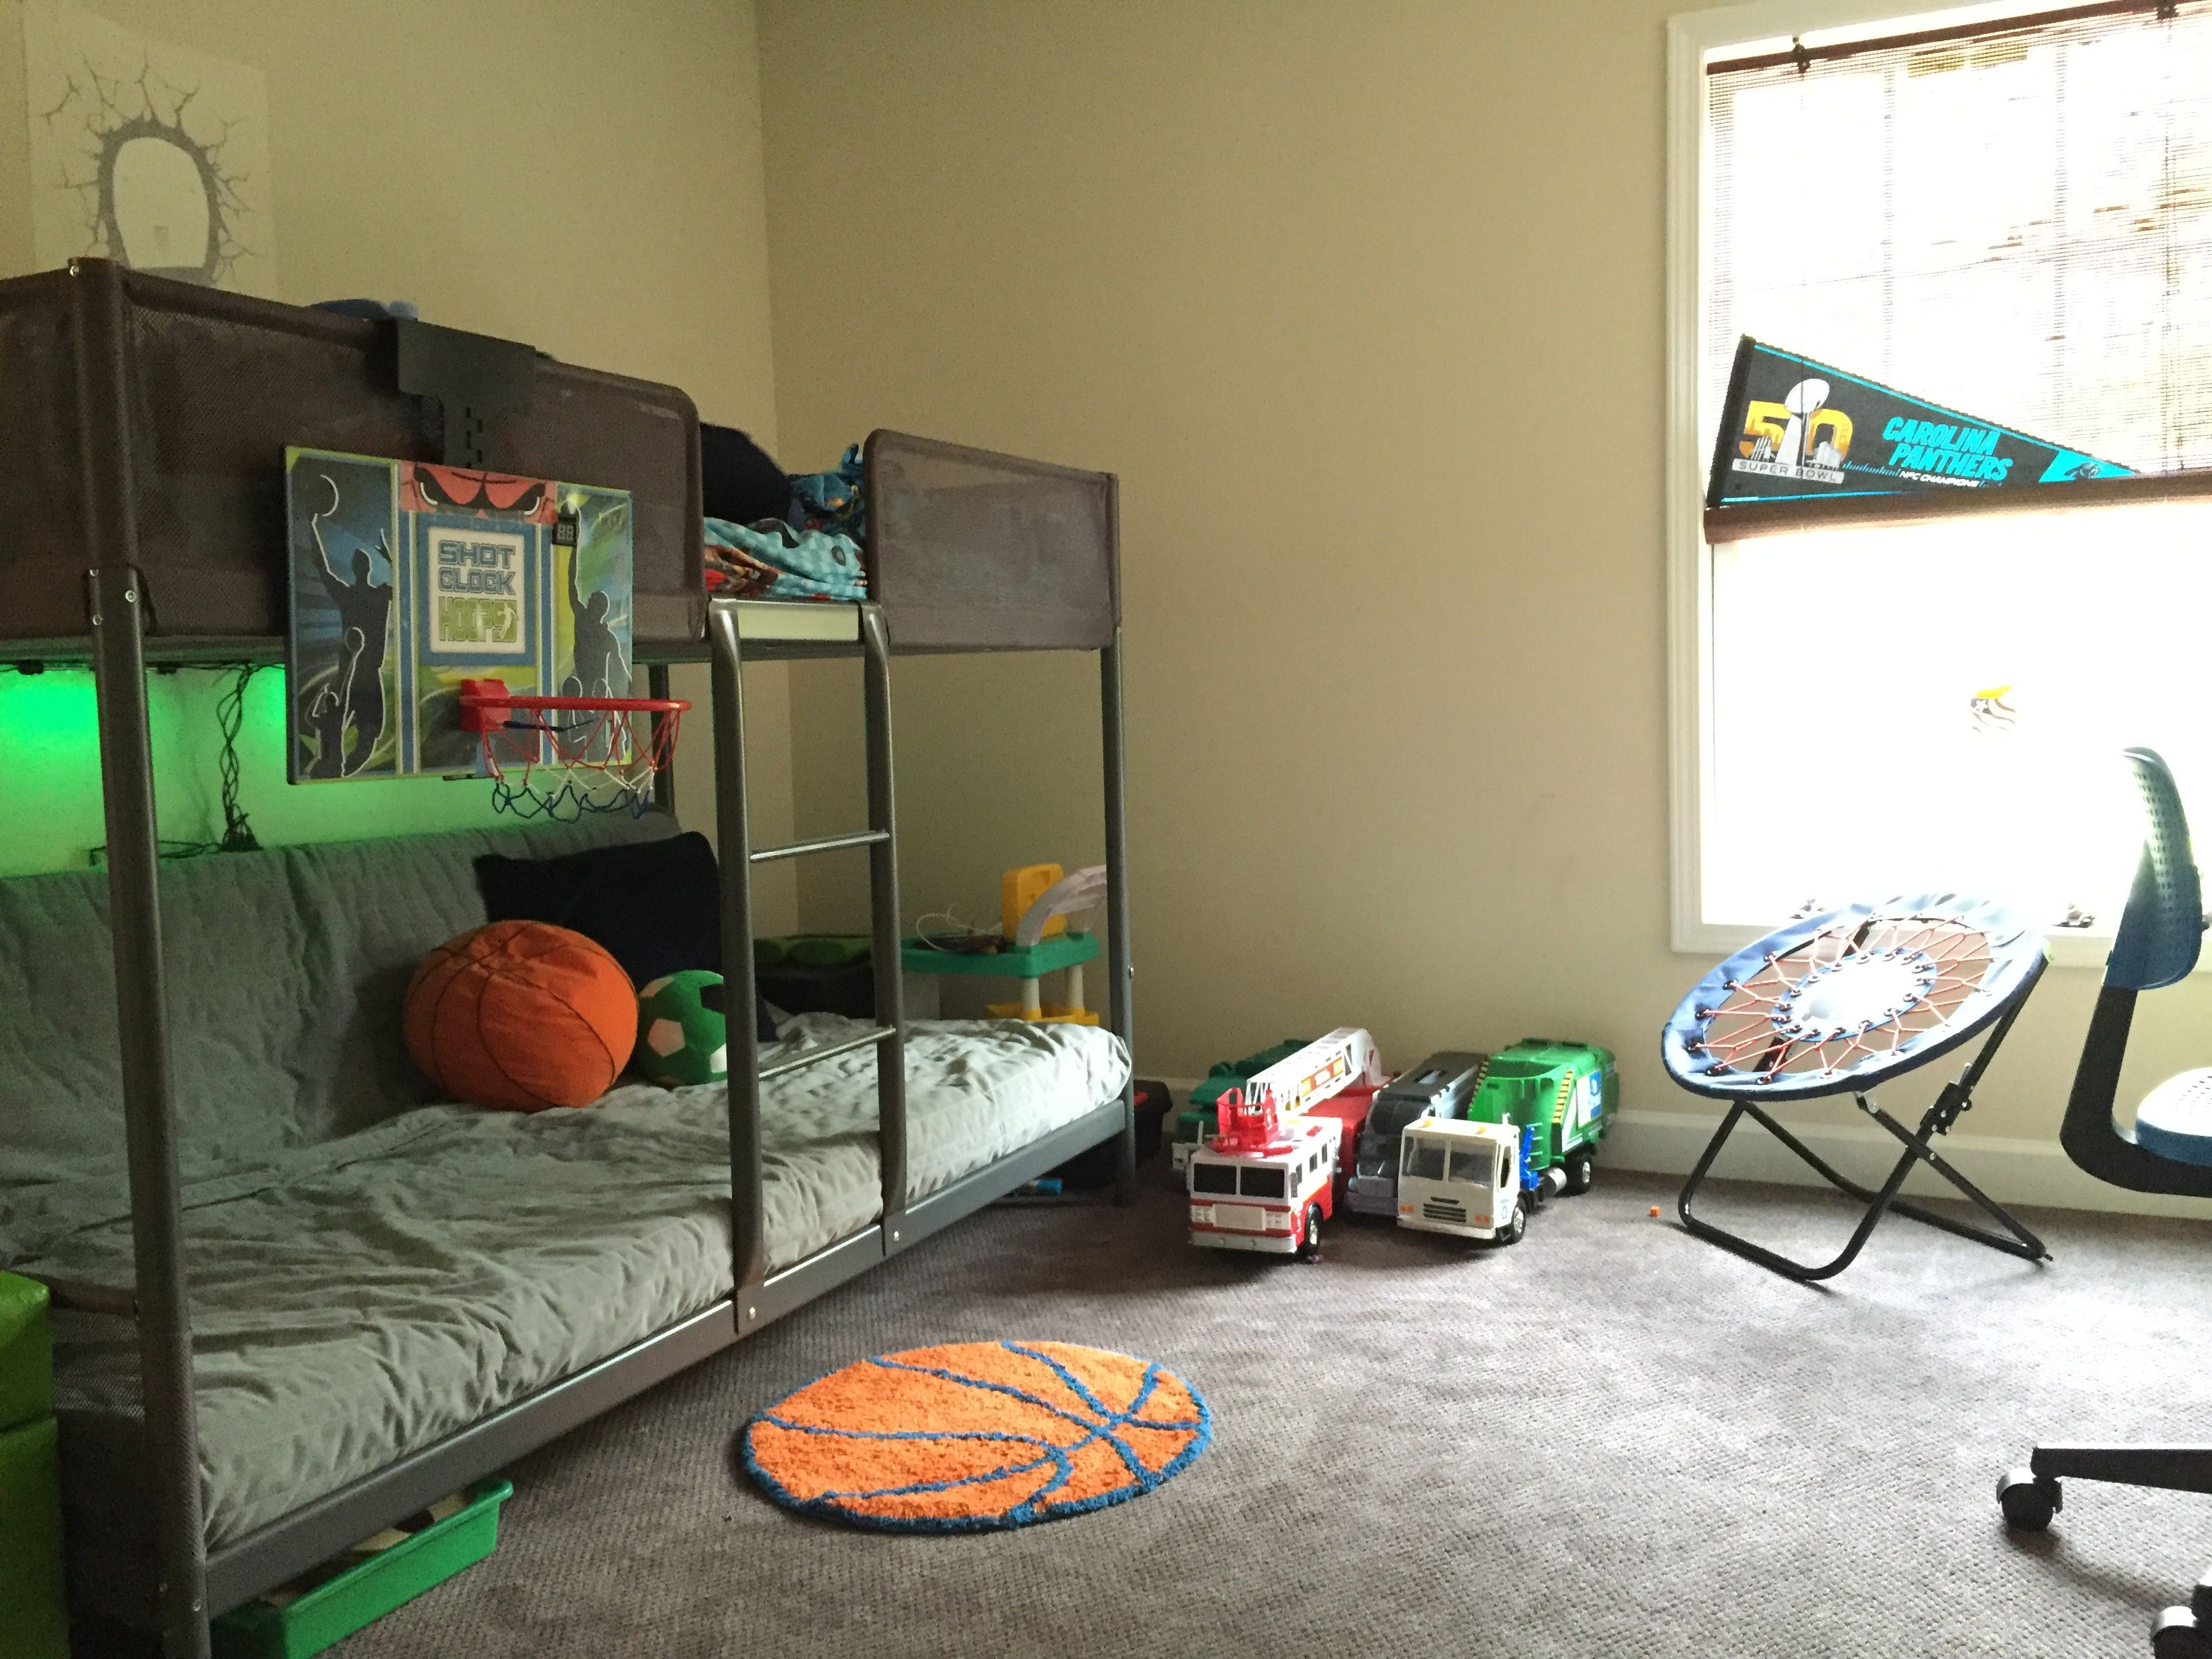 Tuffing loft bed ideas  Ikea Tuffing Bunk Bed with regular full size mattress folded up the